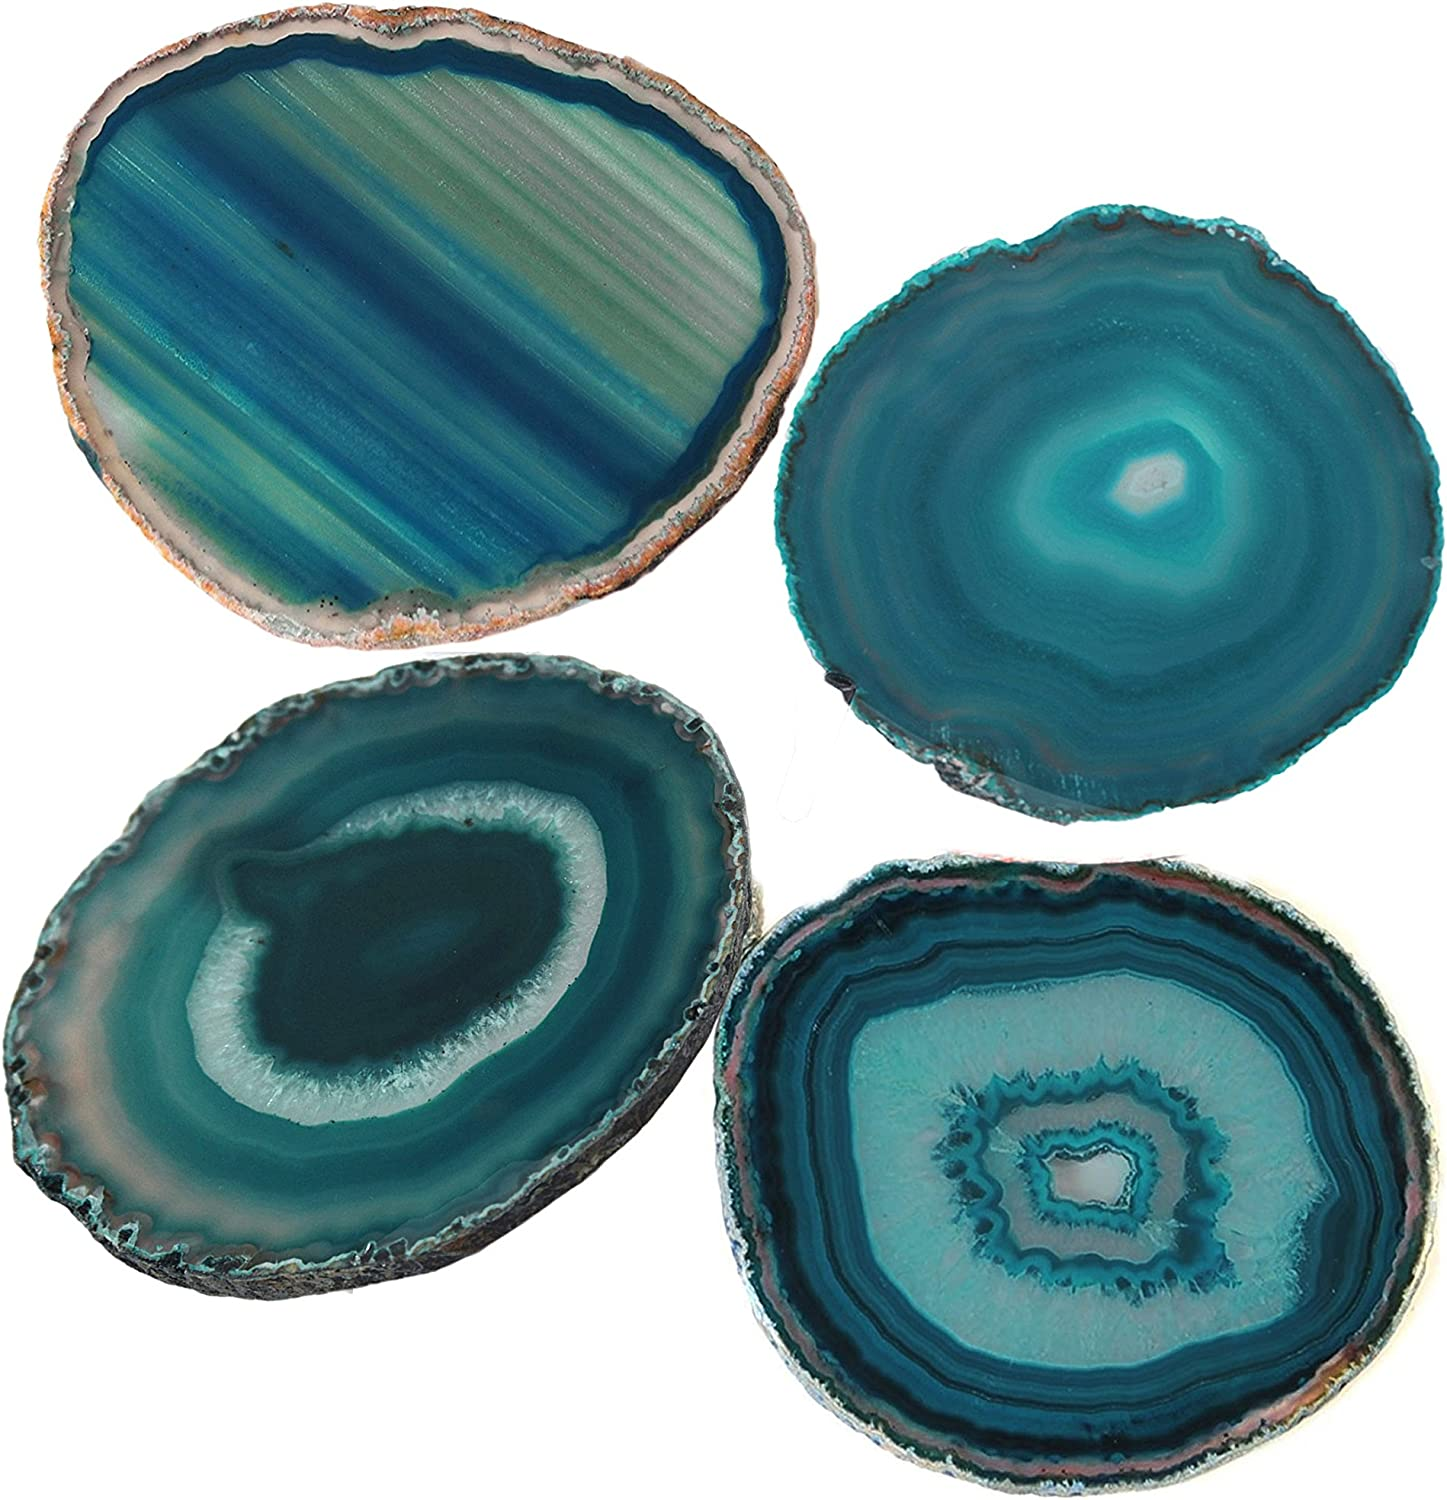 """AMOYSTONE Teal Agate Coaster 3.5-4"""" Dyed Sliced Genuine Brazilian Aqua Agate Drink Coasters with Rubber Bumper Set of 4"""